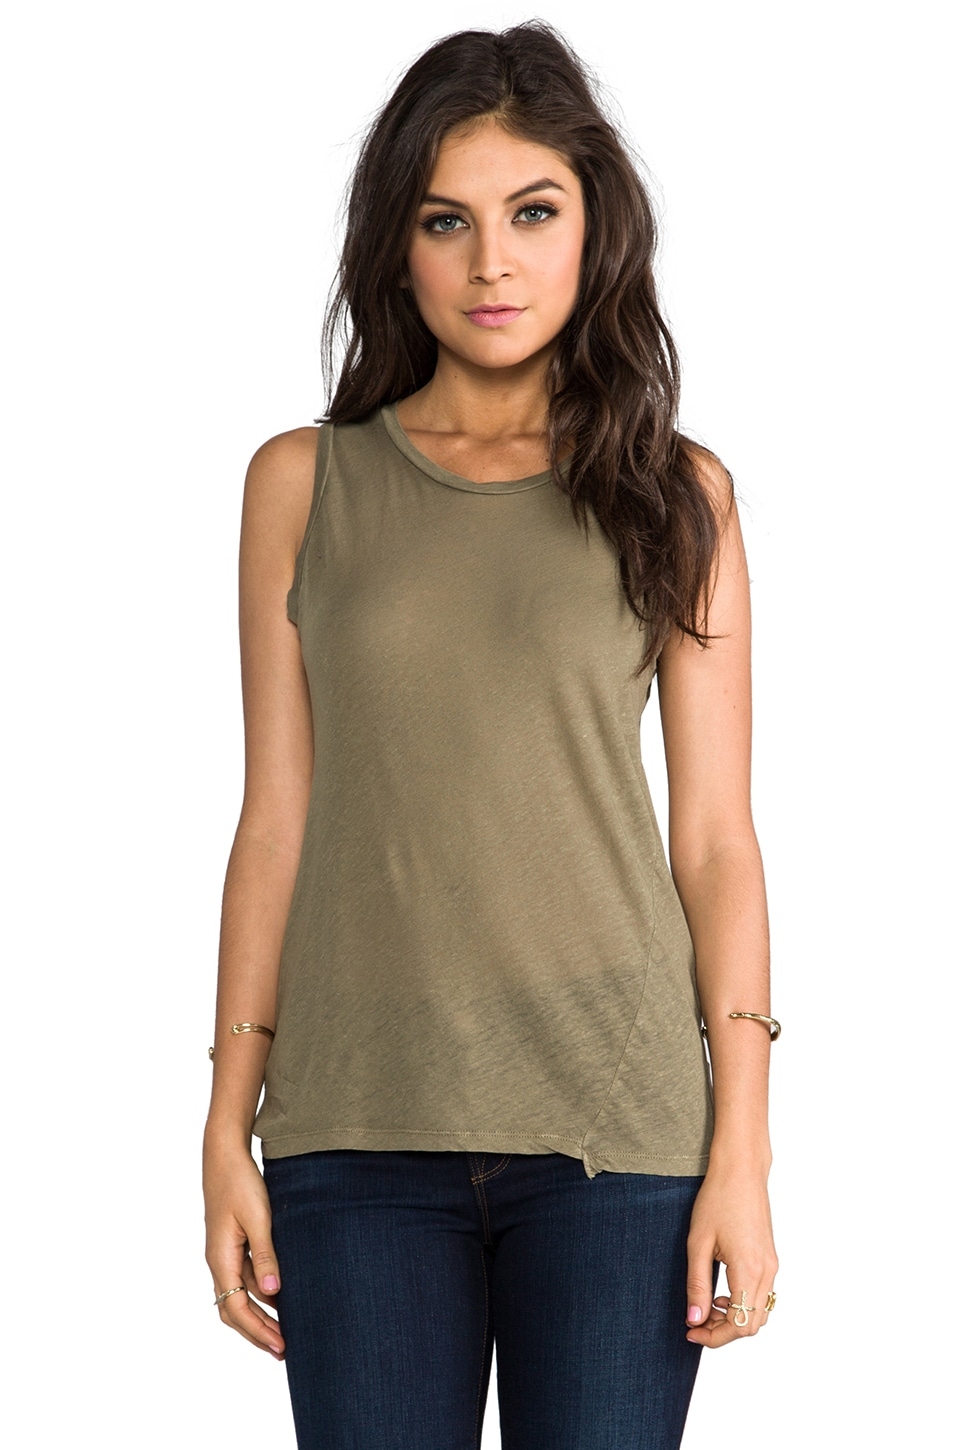 My Line Muscle Tank in Olive